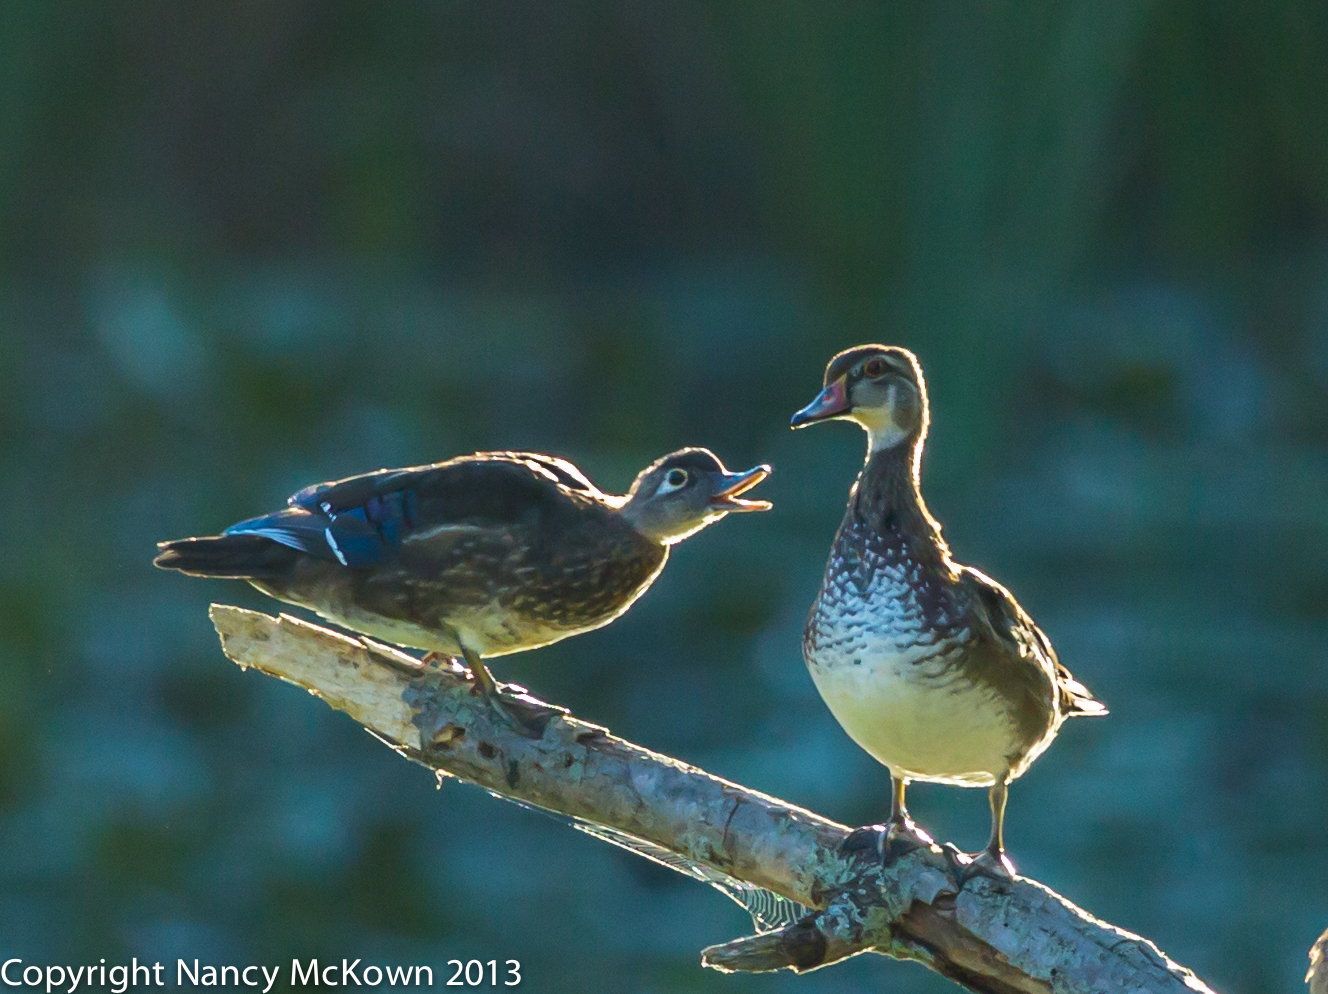 Photograph of Male and Female Wood Duck